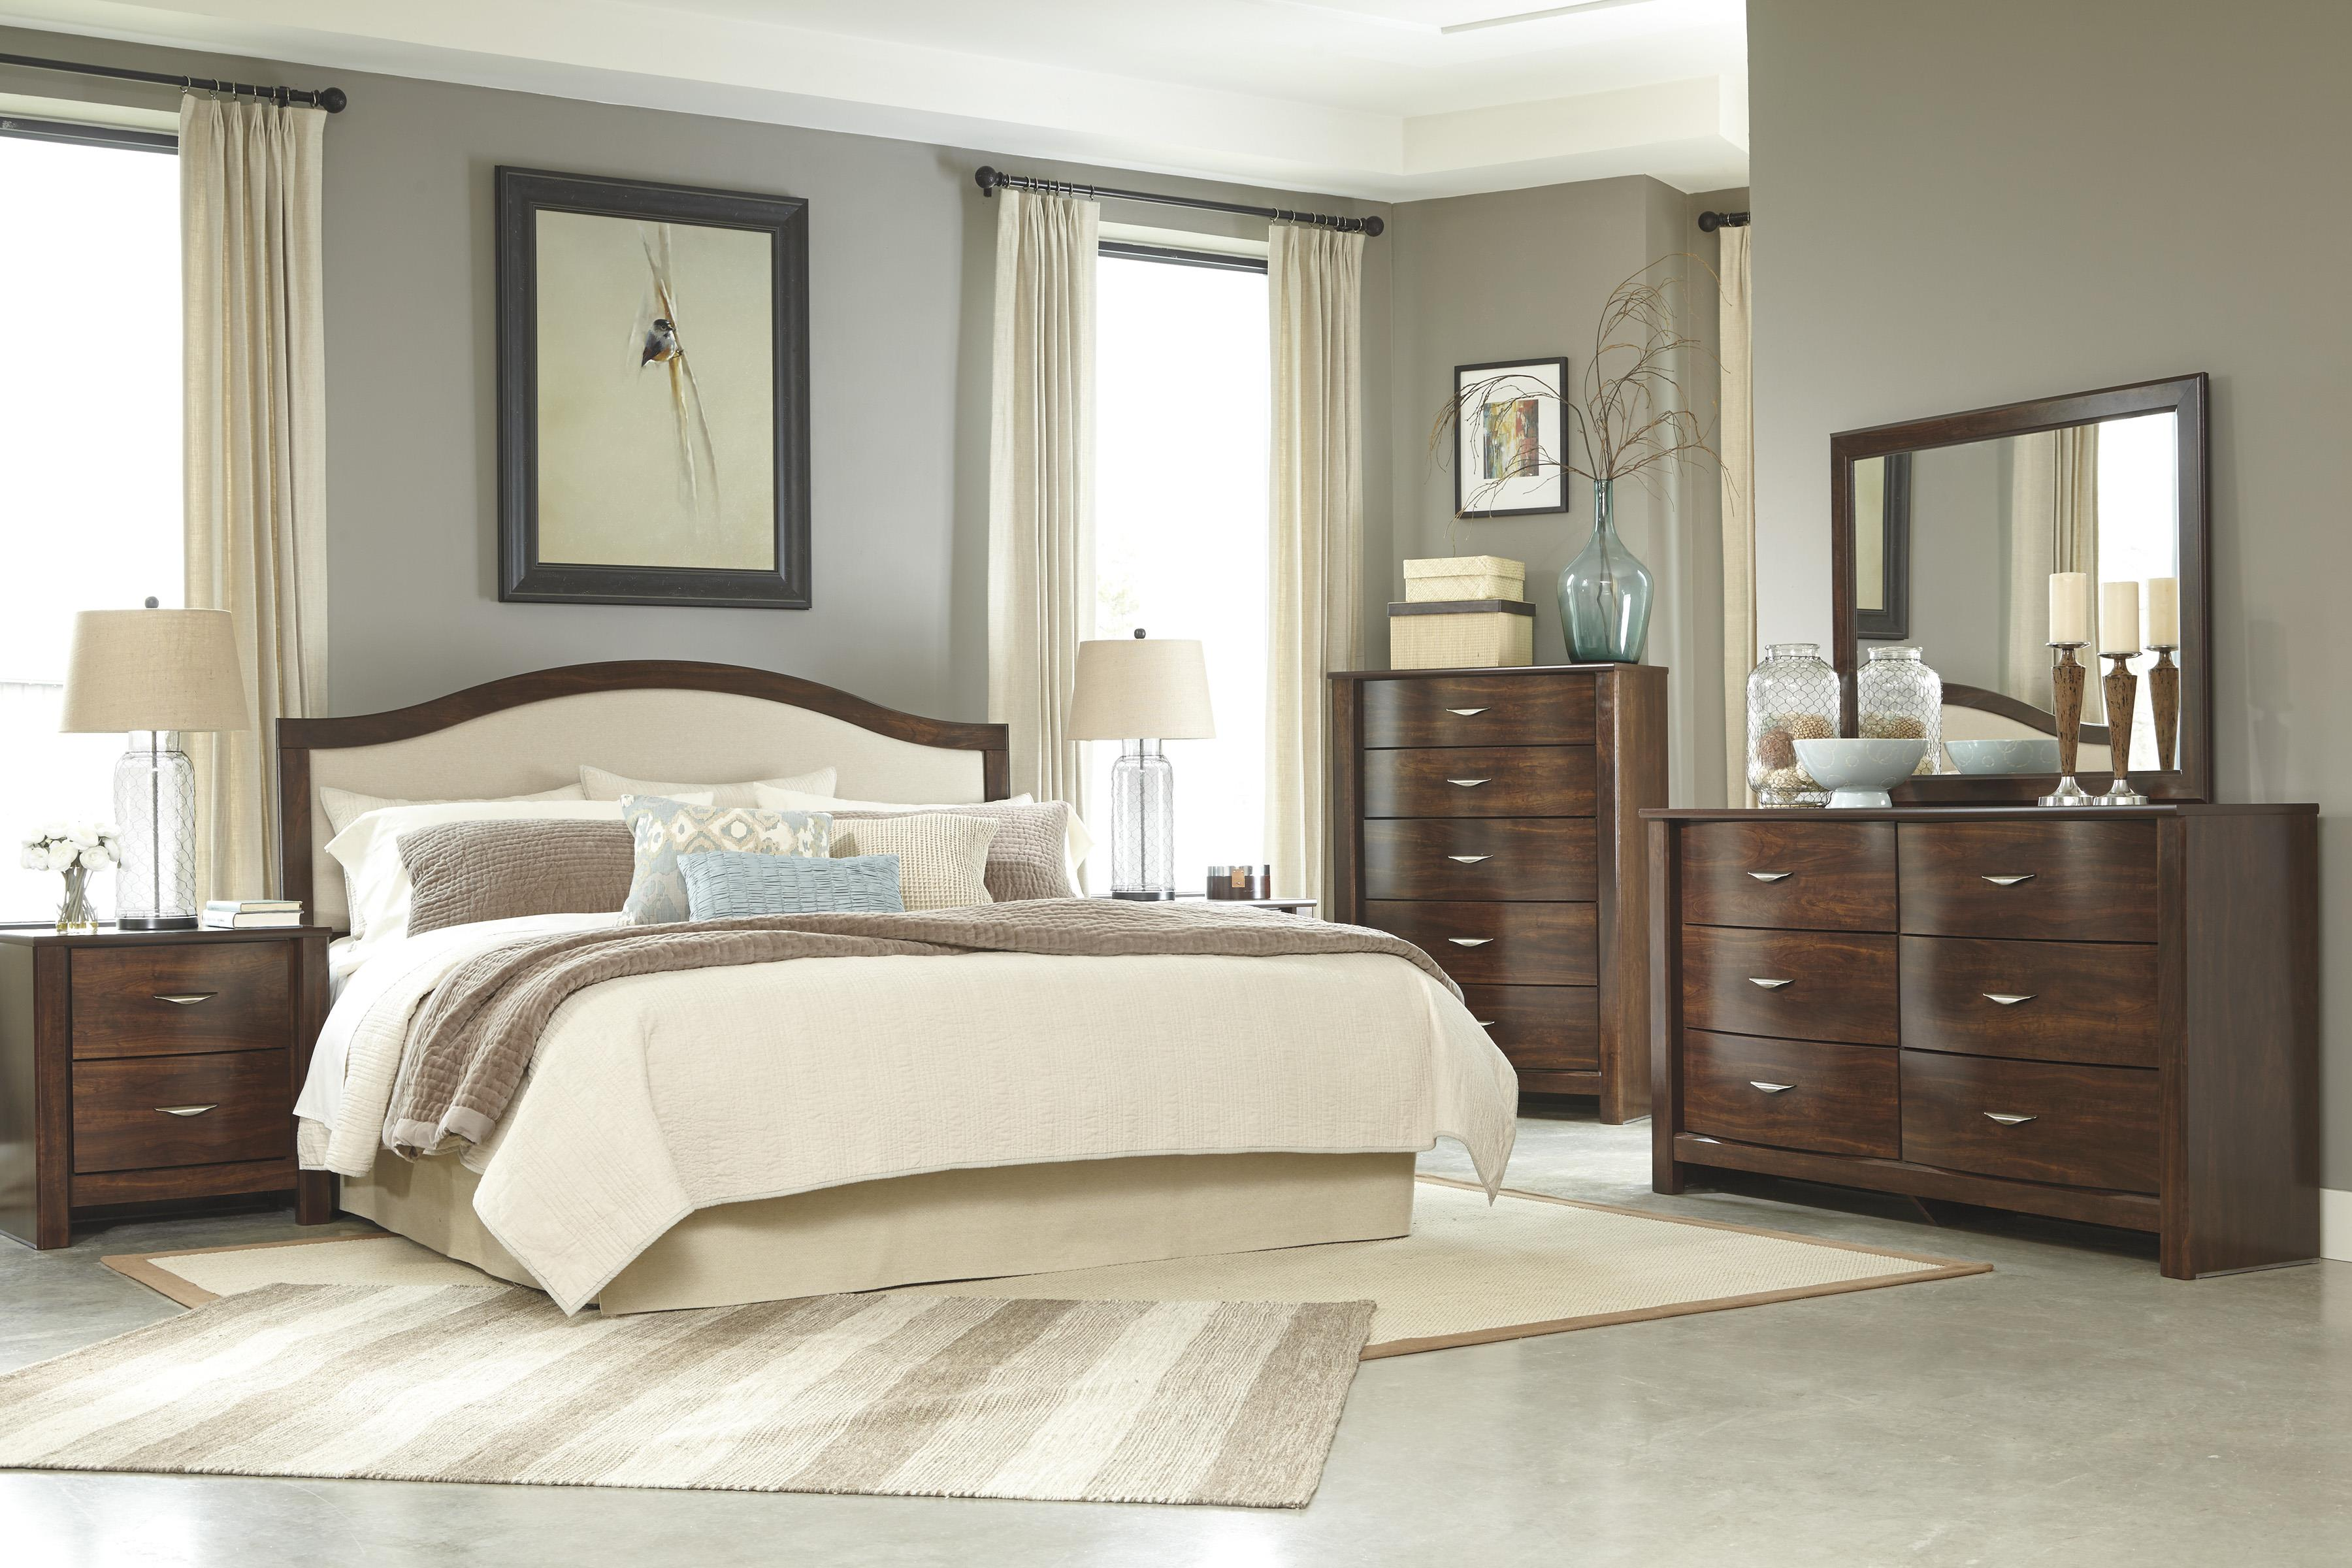 Signature Design by Ashley Corraya King Bedroom Group - Item Number: B428 K Bedroom Group 3